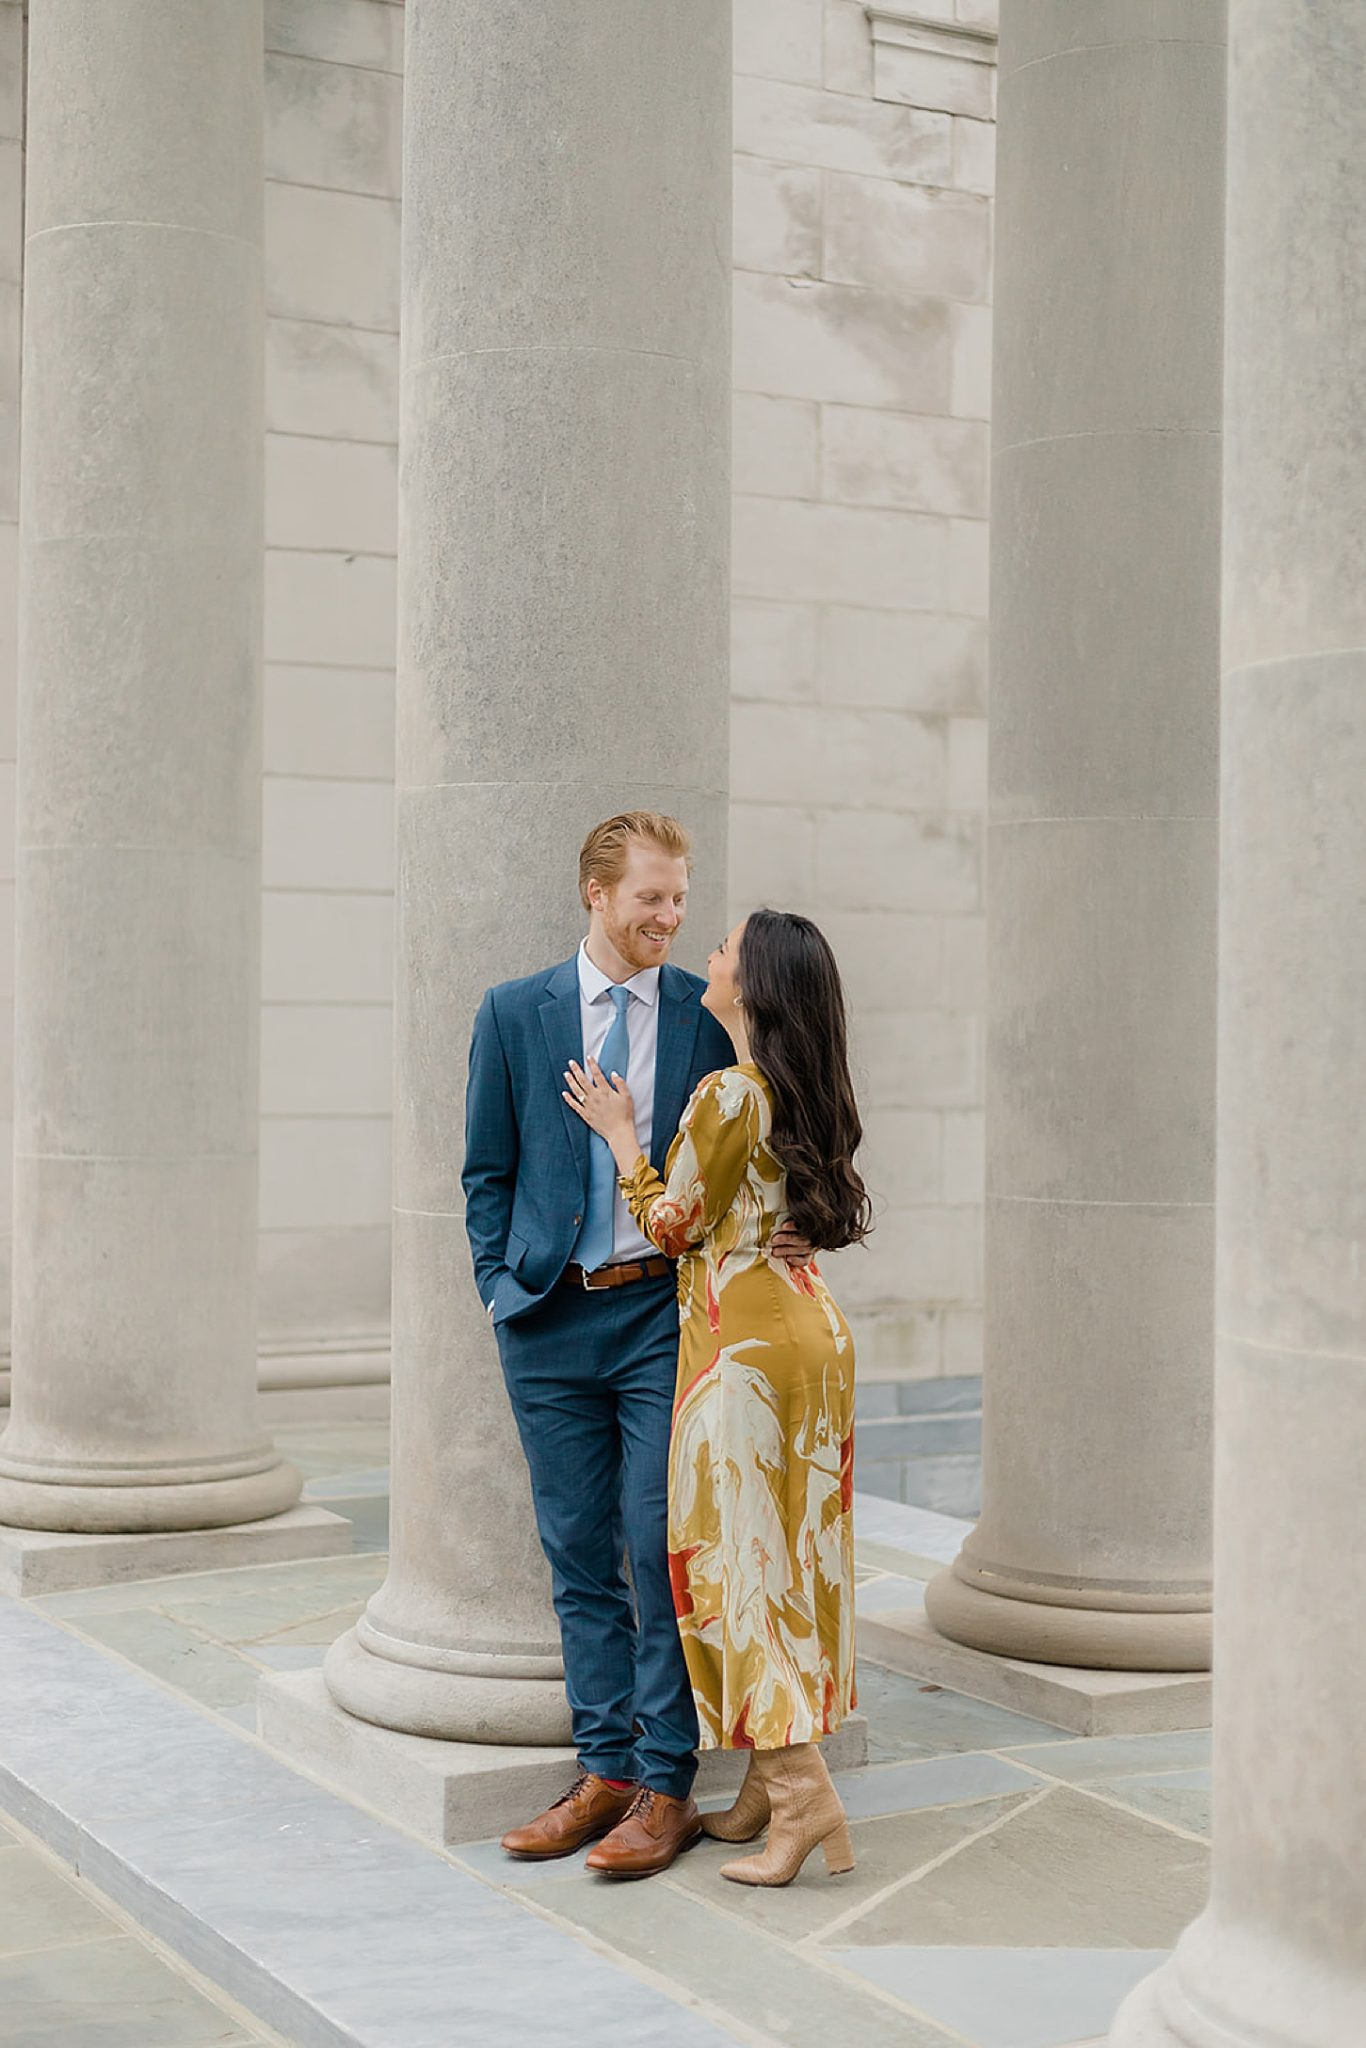 Alfred I. DuPont Hospital for Children Mansion Grounds Engagement Photography by Magdalena Studios 0007 scaled